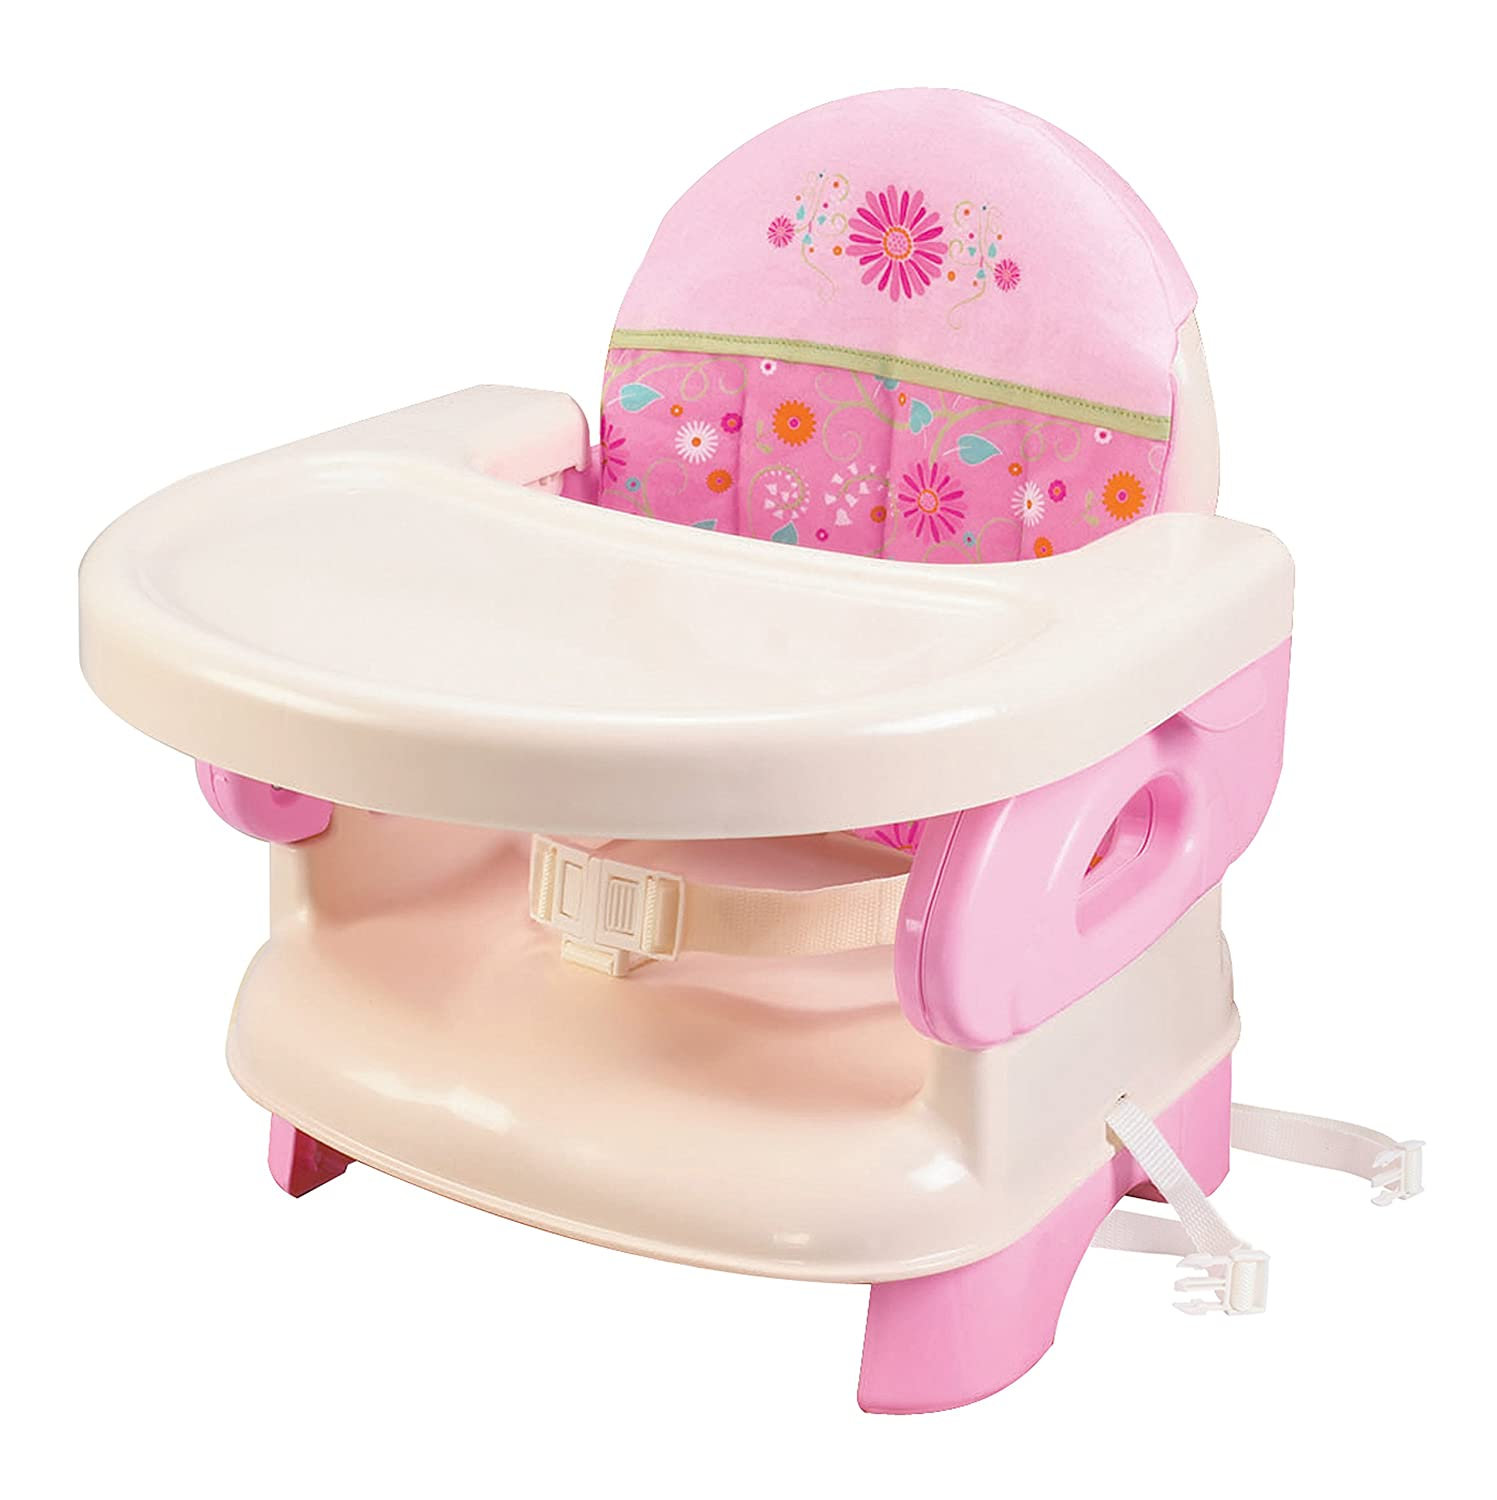 Summer Deluxe Comfort Folding Booster Seat, Pink